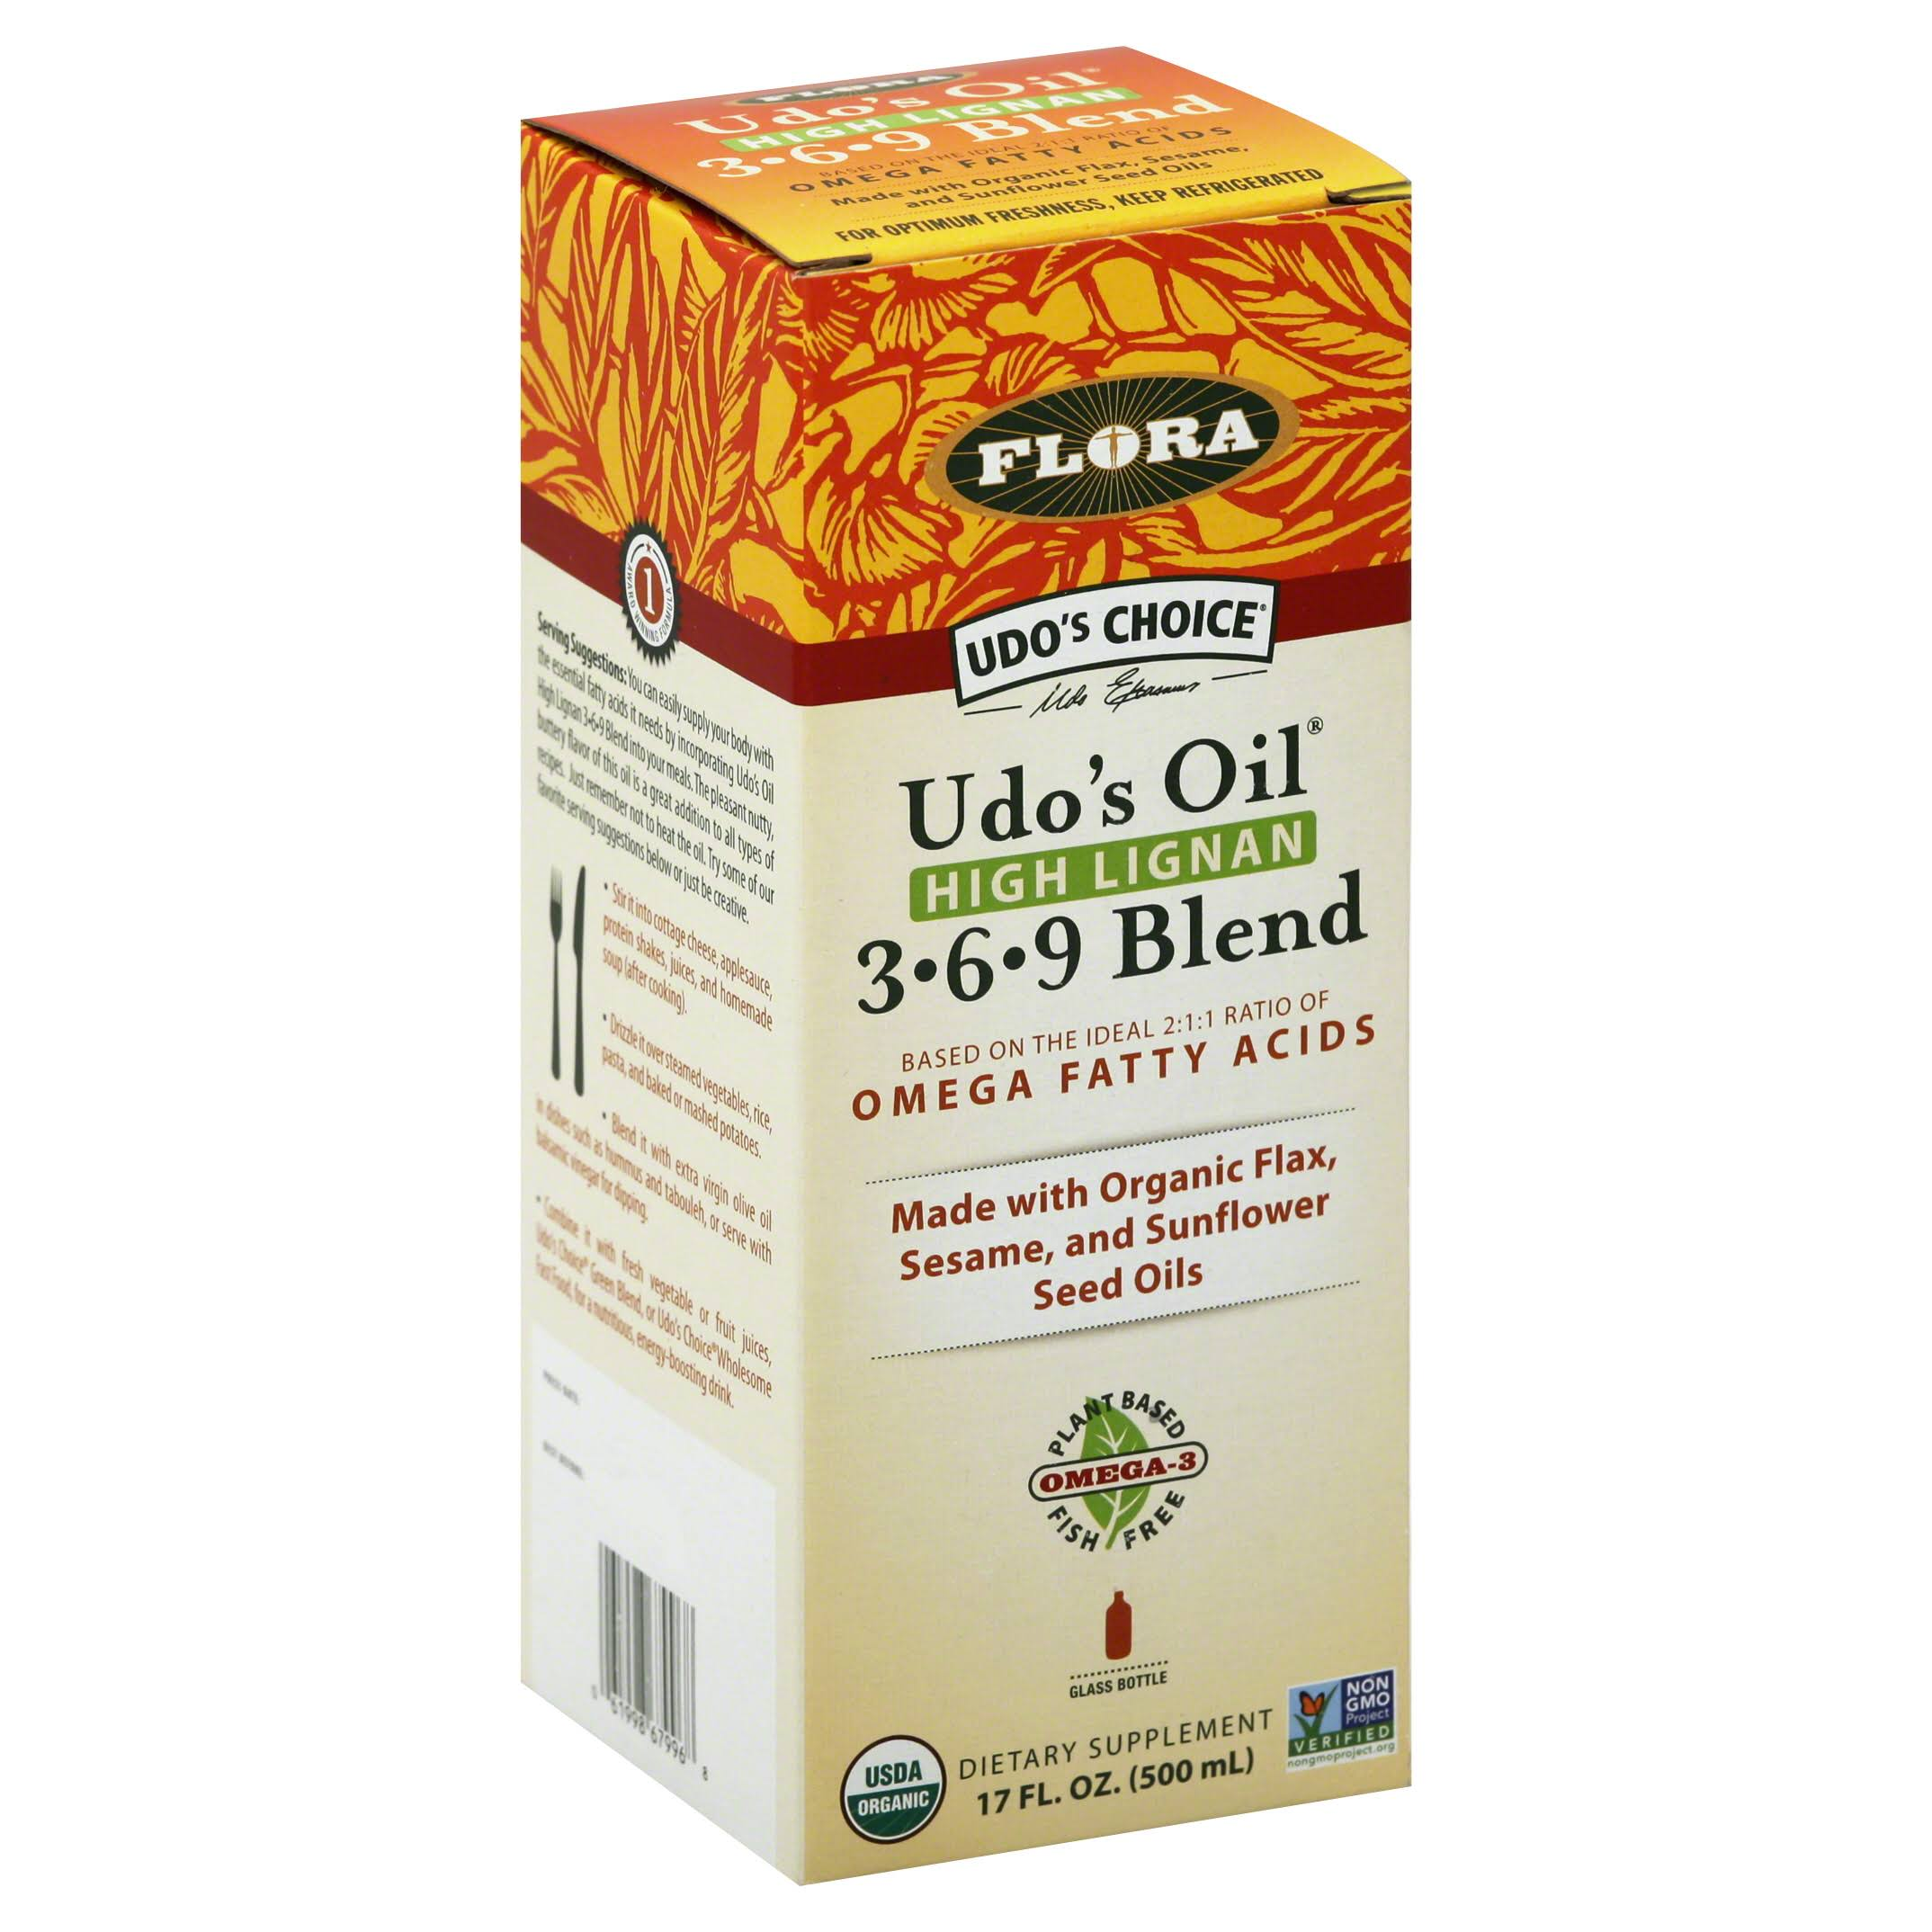 Flora Udo's Choice Udo's Oil 3-6-9 Blend - 17oz